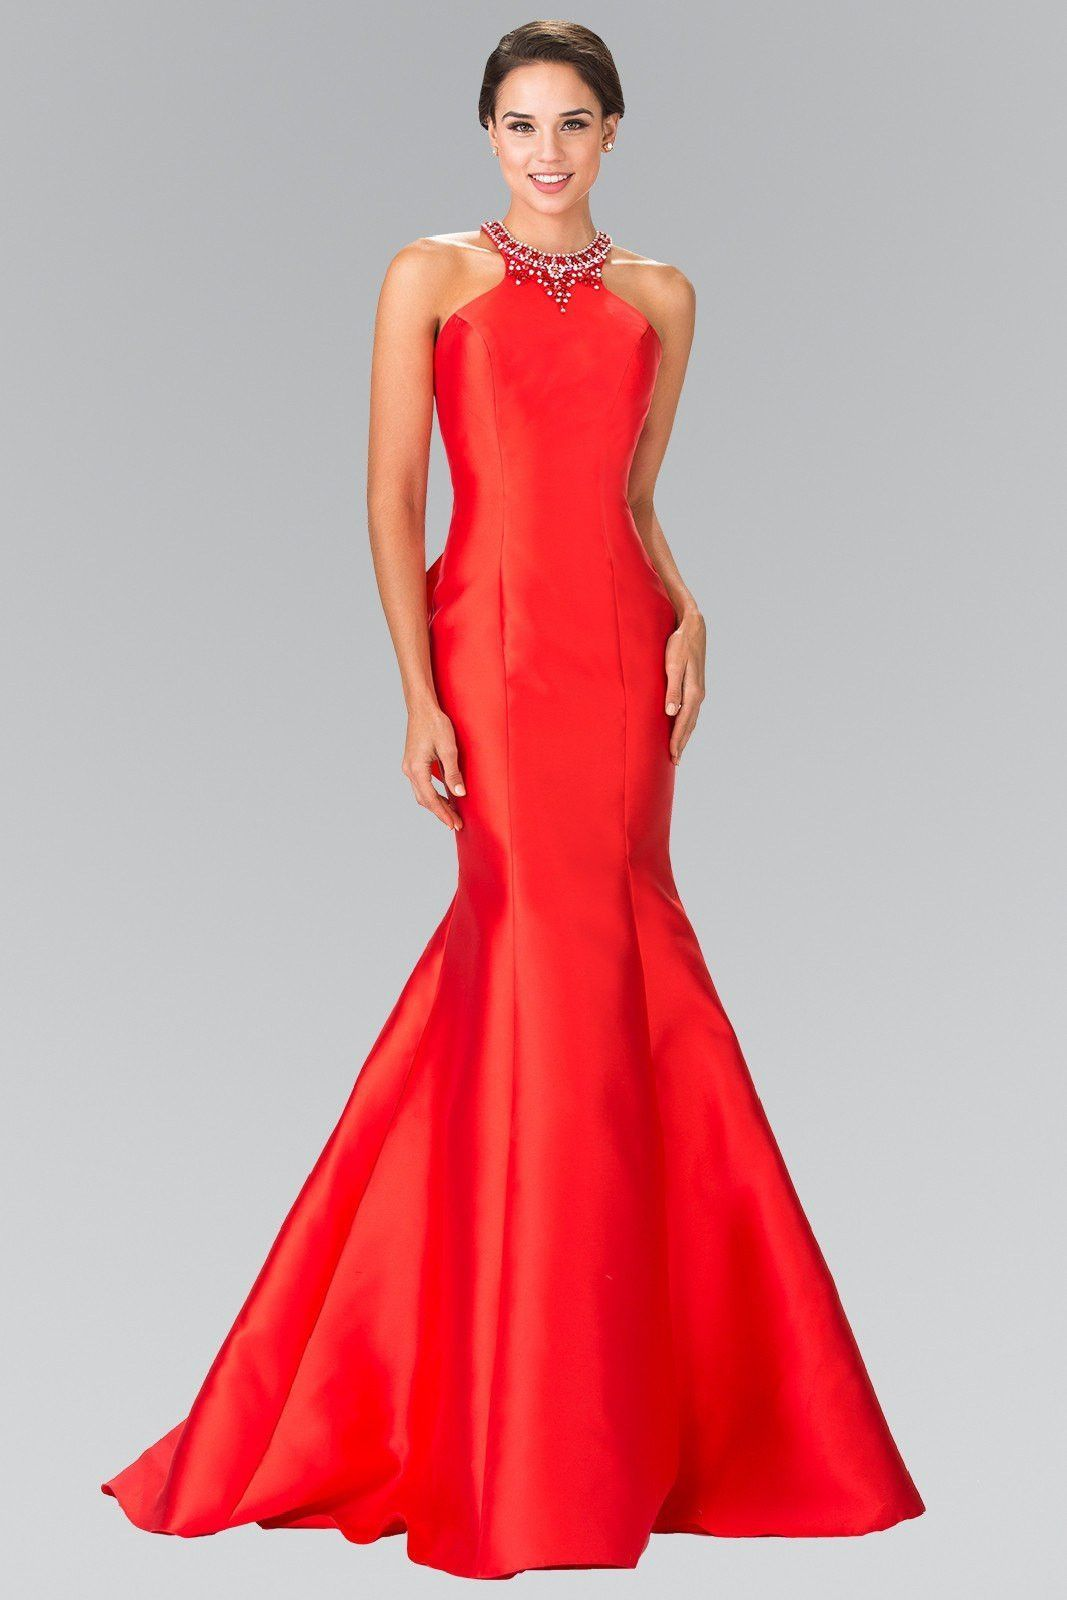 Tight mermaid prom dress with ruffles gl motheraunt of the